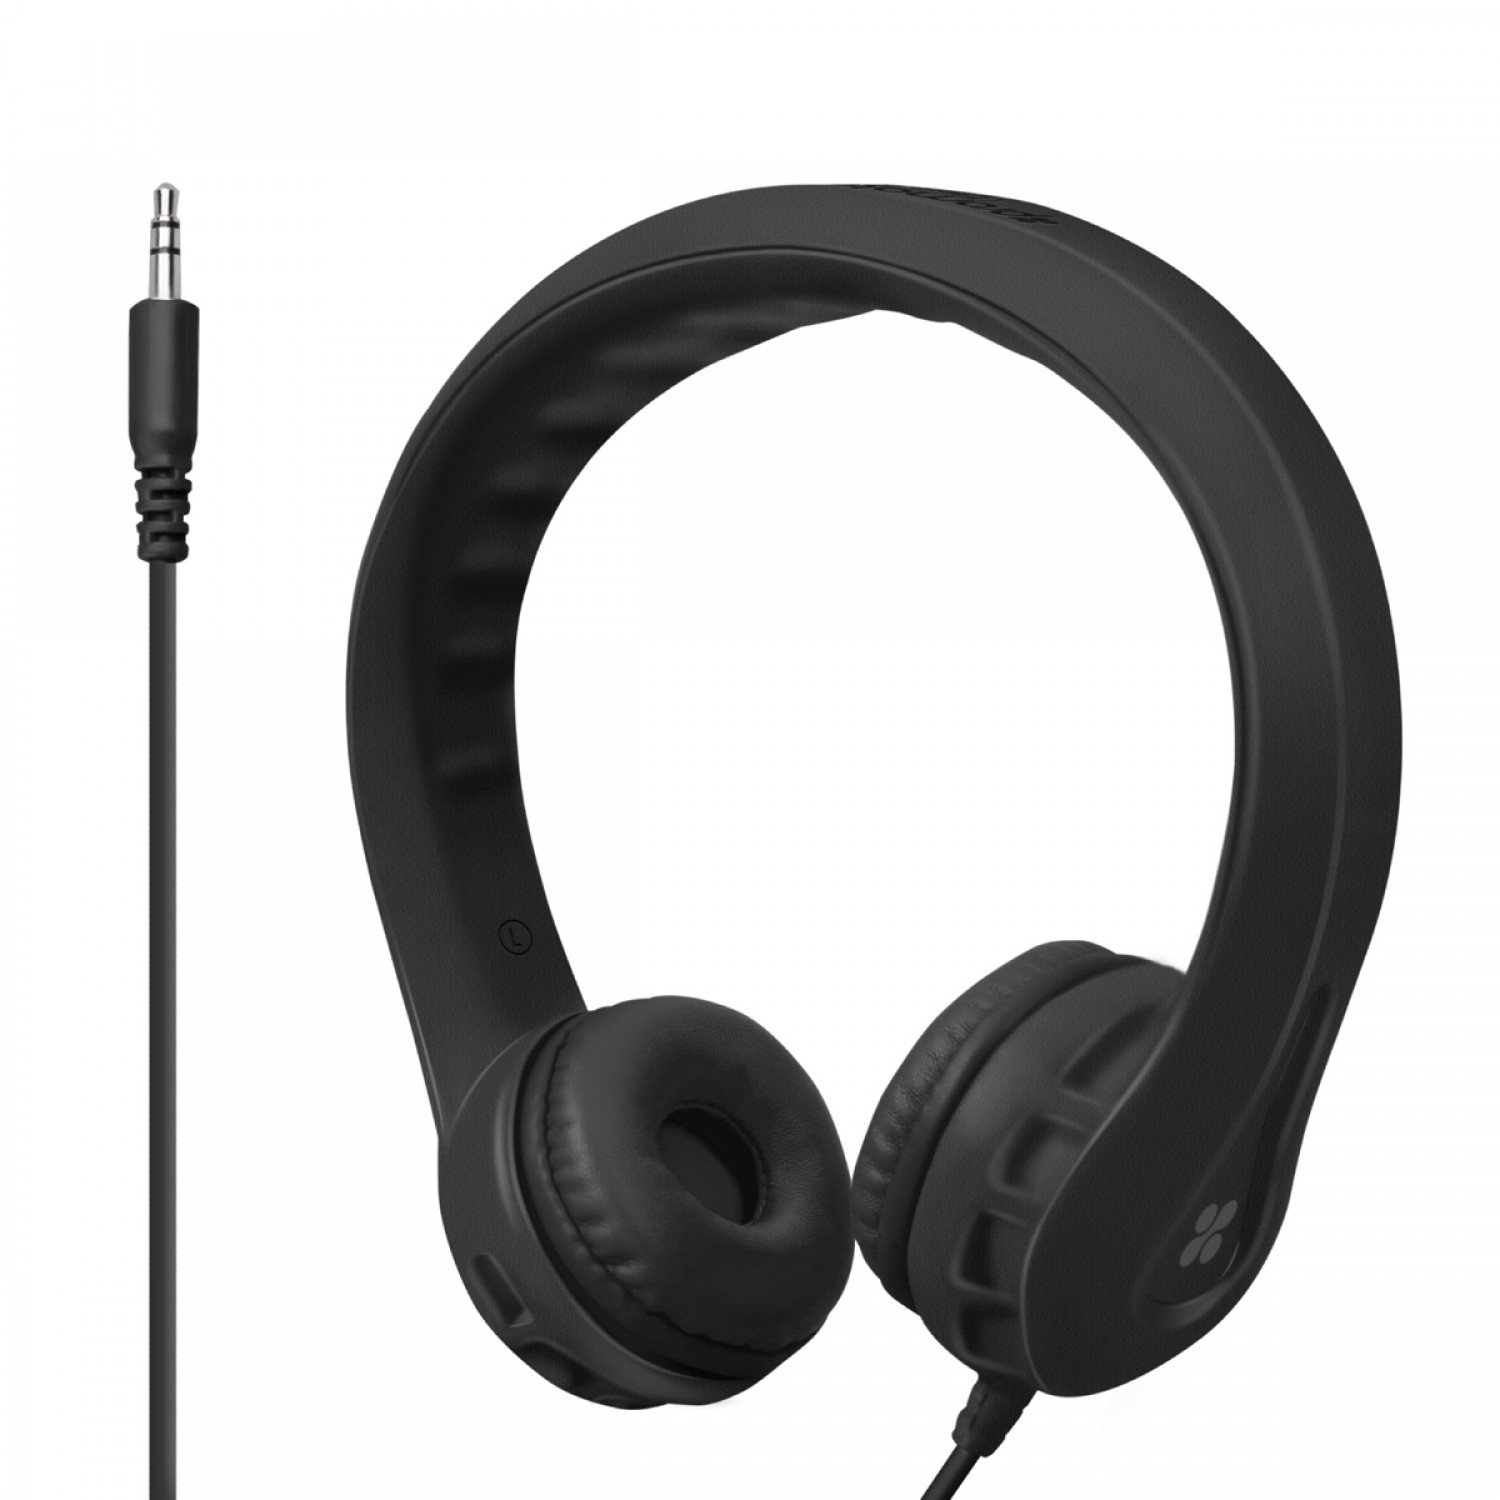 Promate Kids Headset, High Quality Volume Limited Wired Headphones with Child Safe Foam Headphones for Home, Travel, Smartphones PC Music Gaming, Flexure Black